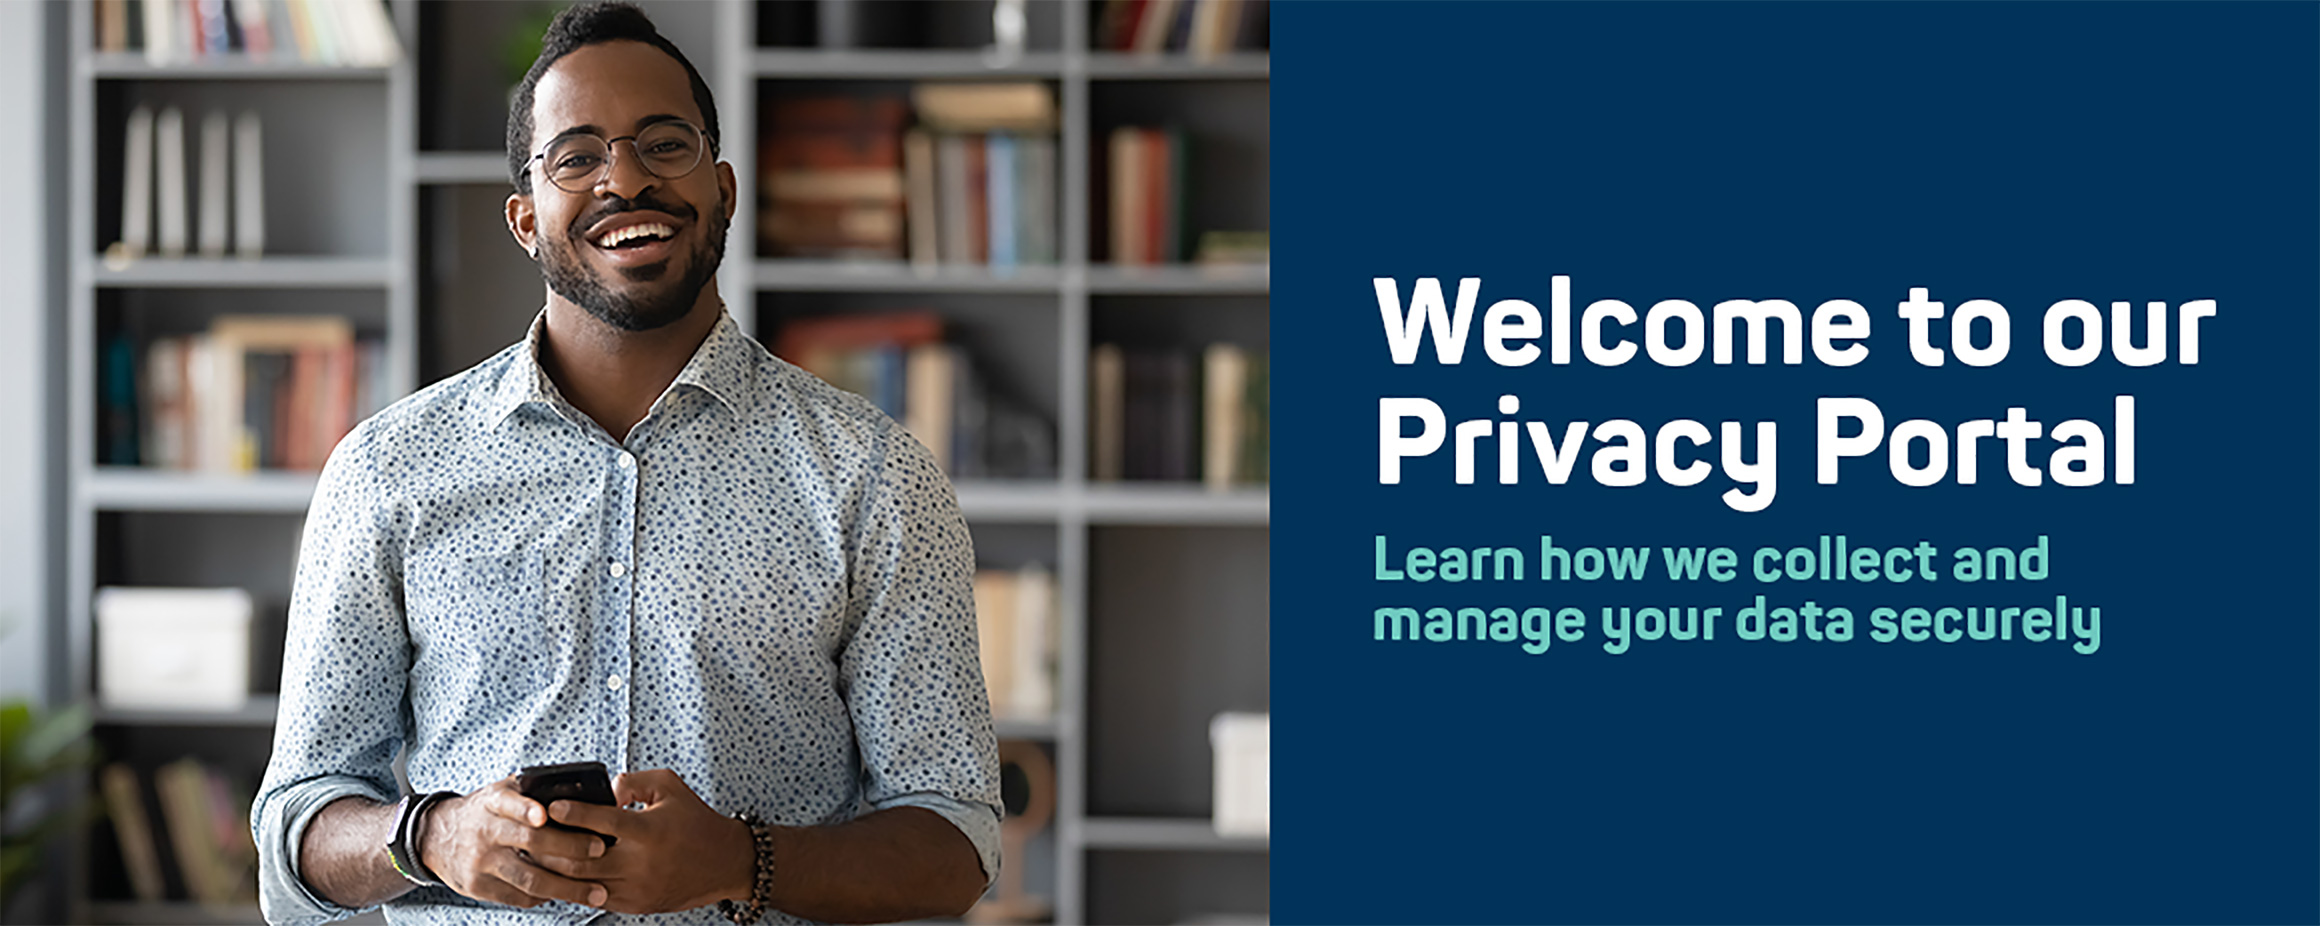 Welcome to pur Privacy Portal